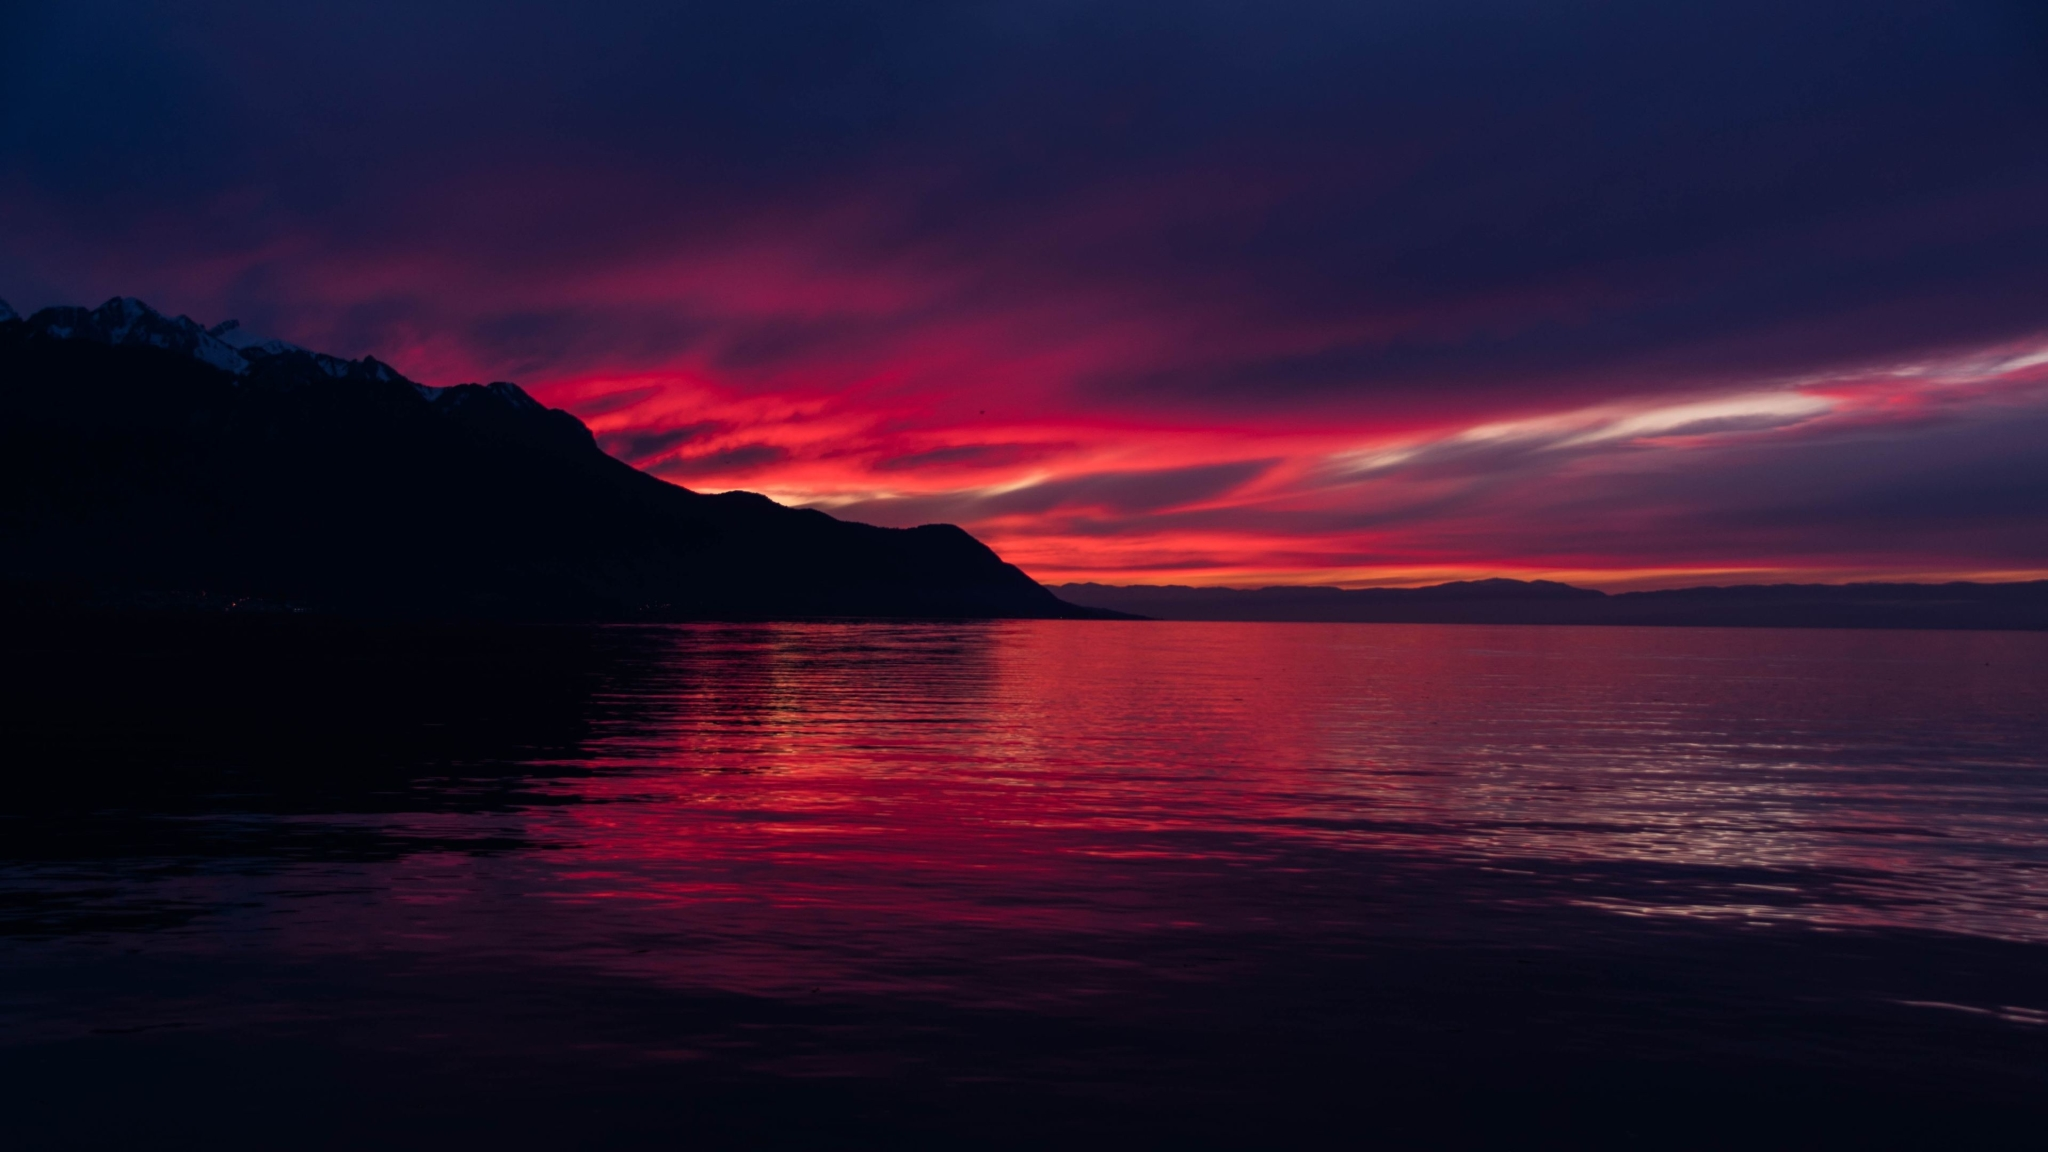 2048x1152 4k Dark Sunset 2048x1152 Resolution Wallpaper Hd Nature 4k Wallpapers Images Photos And Background